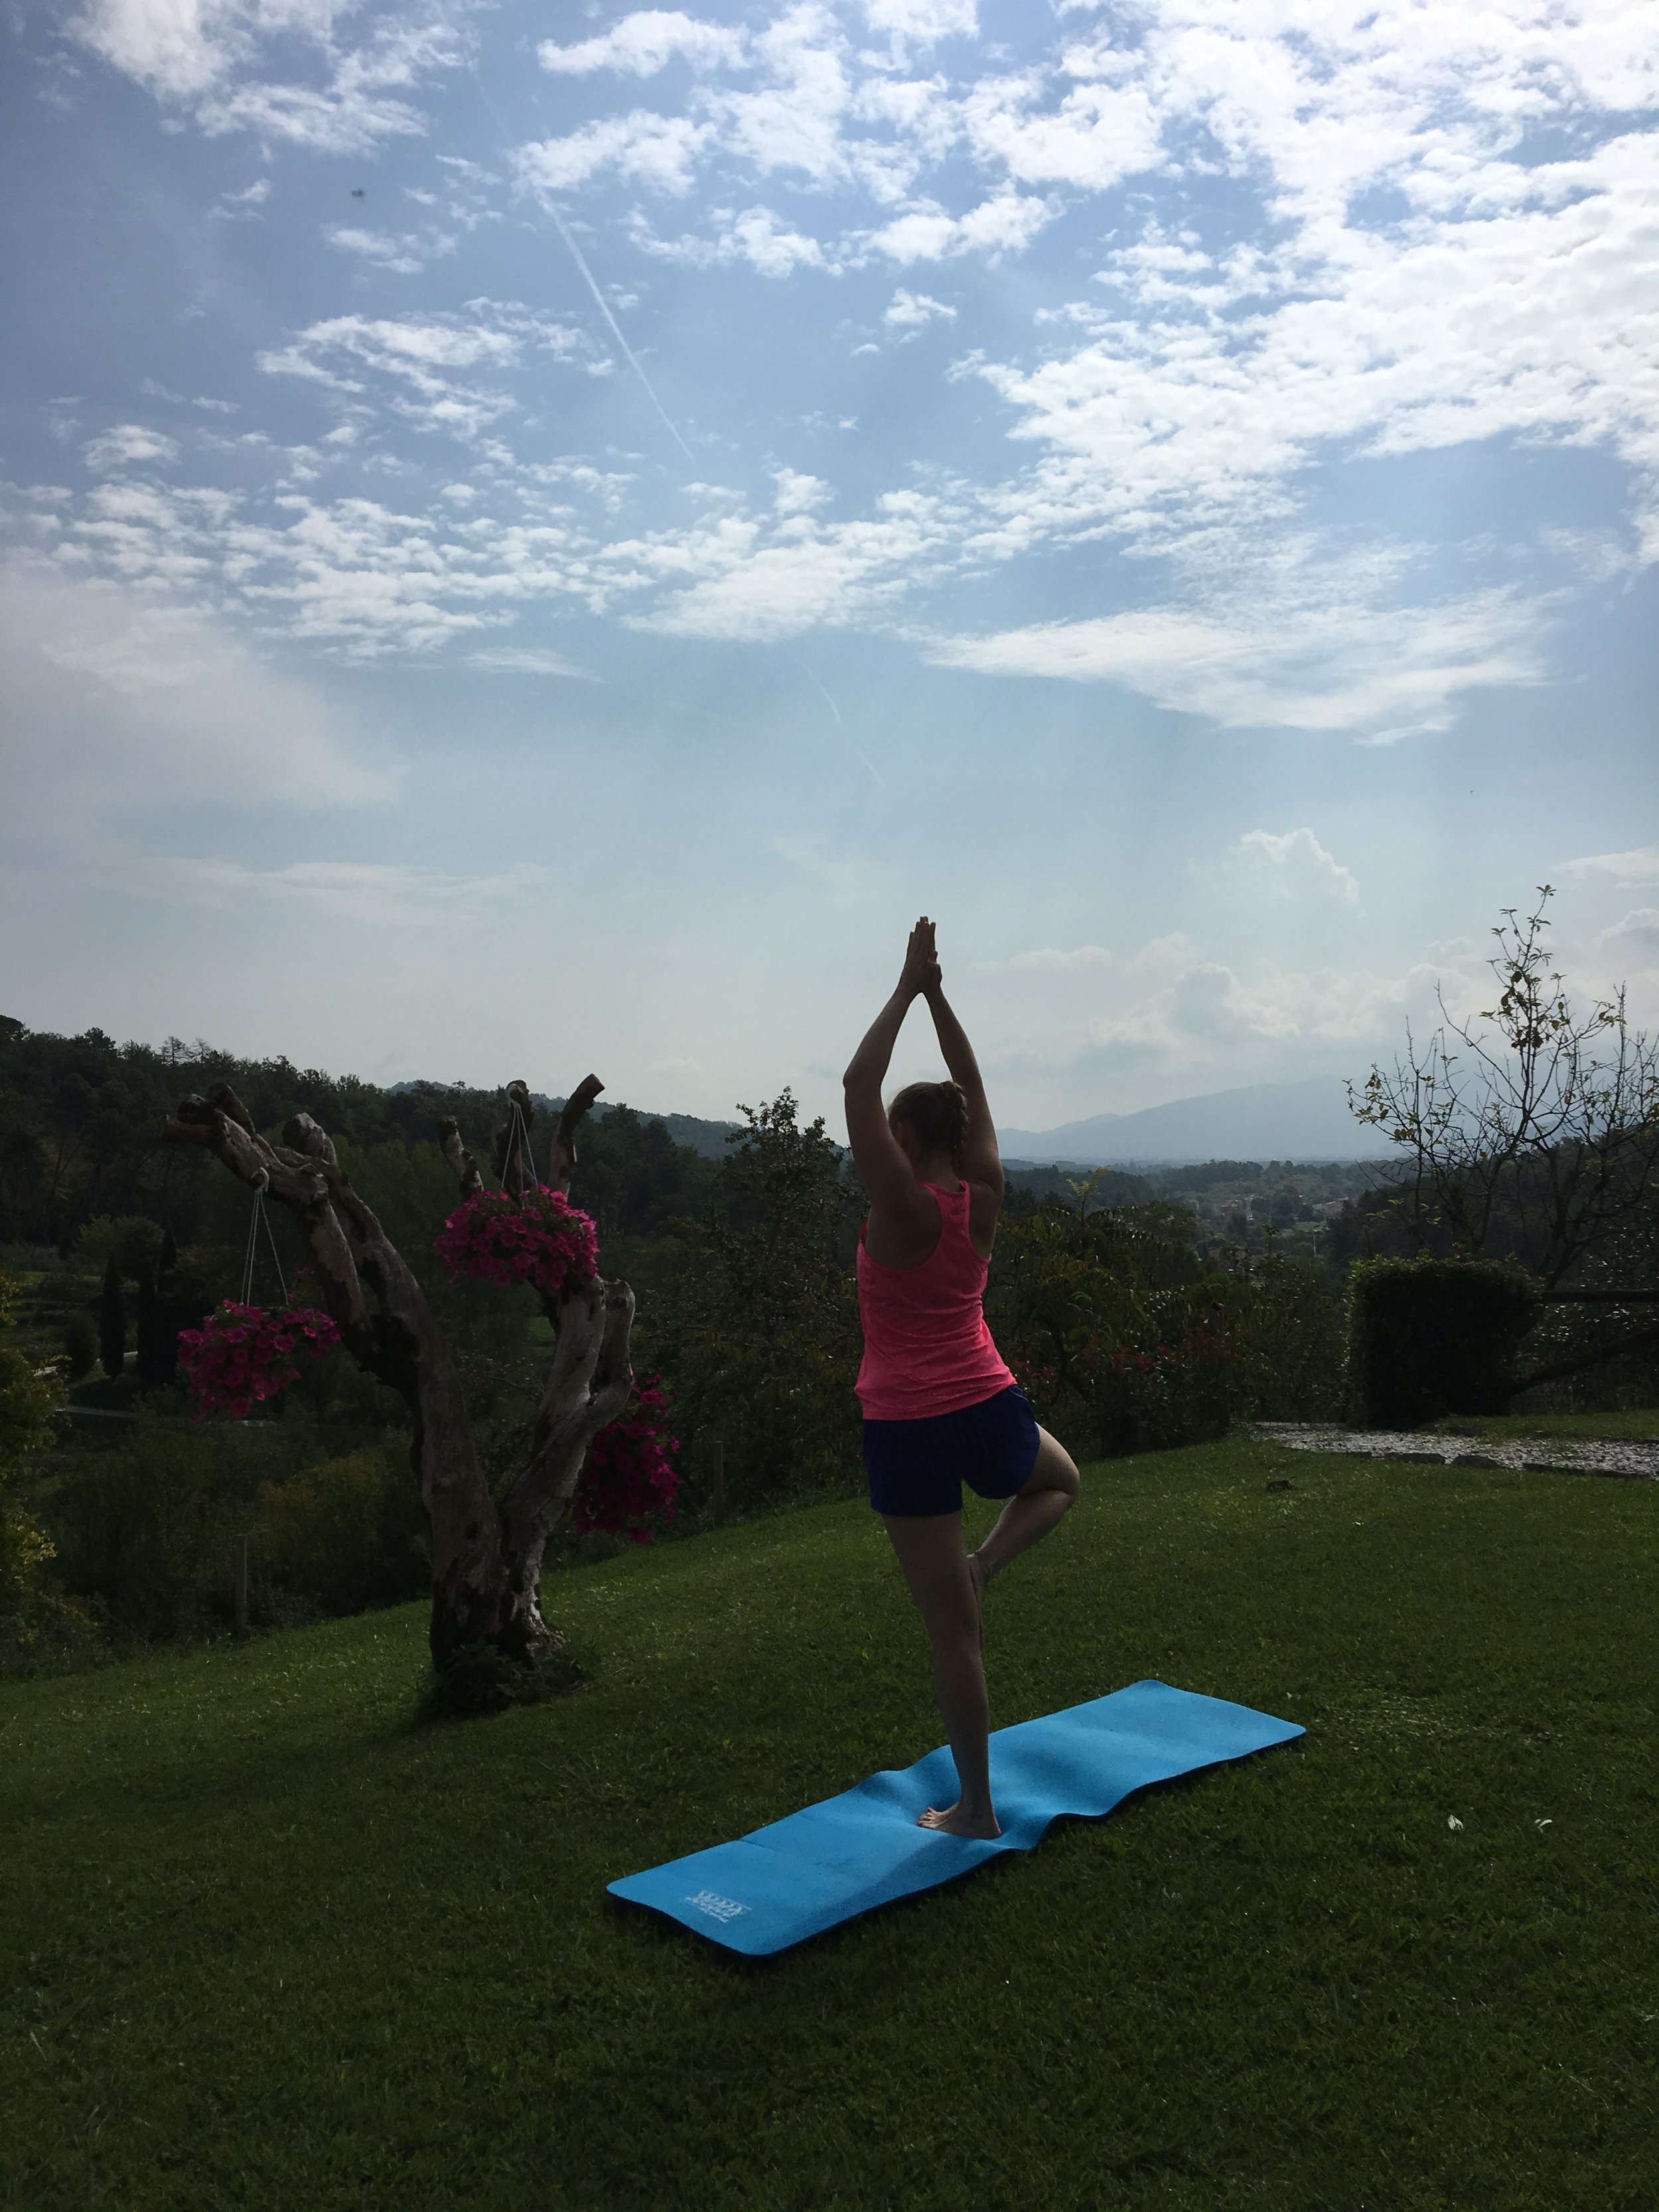 JUNE CLEARSPACE: Yoga and Fitness with Balance GymJune 7-14 2019 from £935 - Clearspace is joining forces with Balance : The Countryside Gym and Kara Herbert, Yoga Teacher to present a full weeks retreat of Hatha yoga and fitness- Only 3 more places available